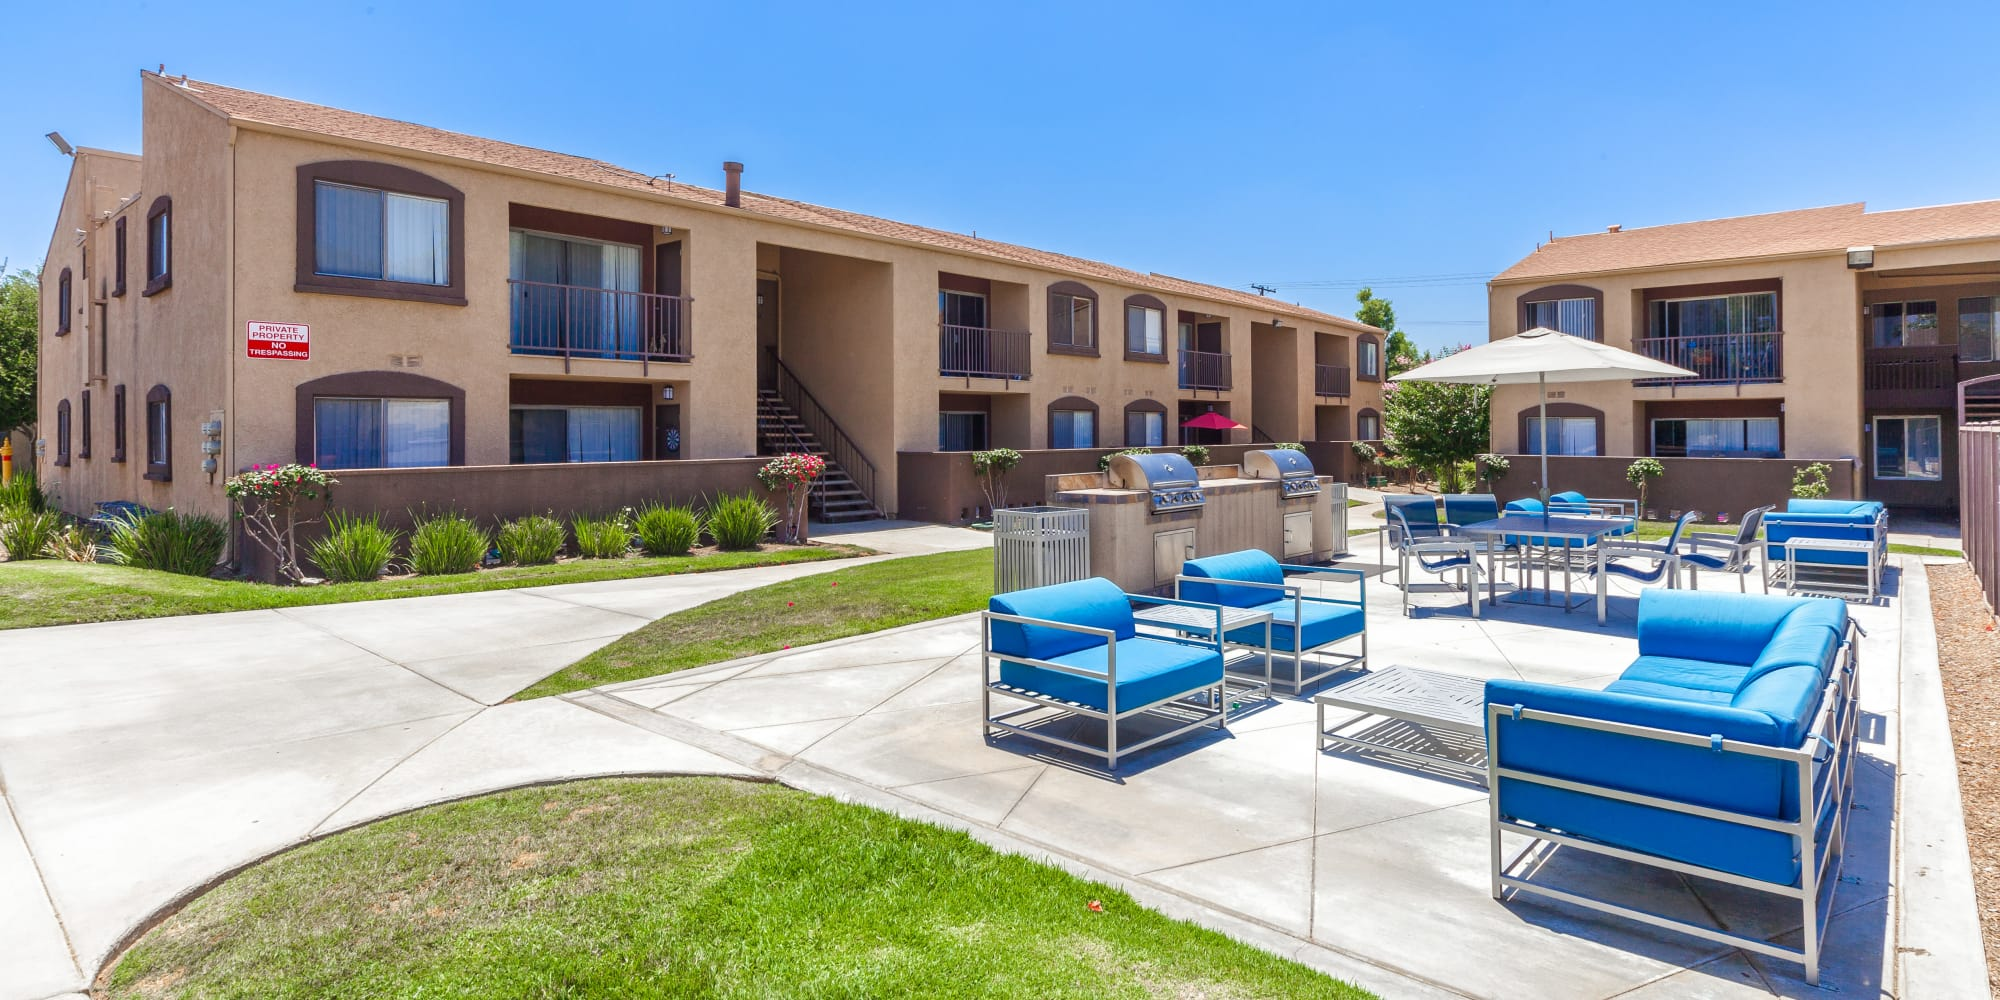 Courtyard on a beautiful sunny day at West Fifth Apartments in Ontario, California